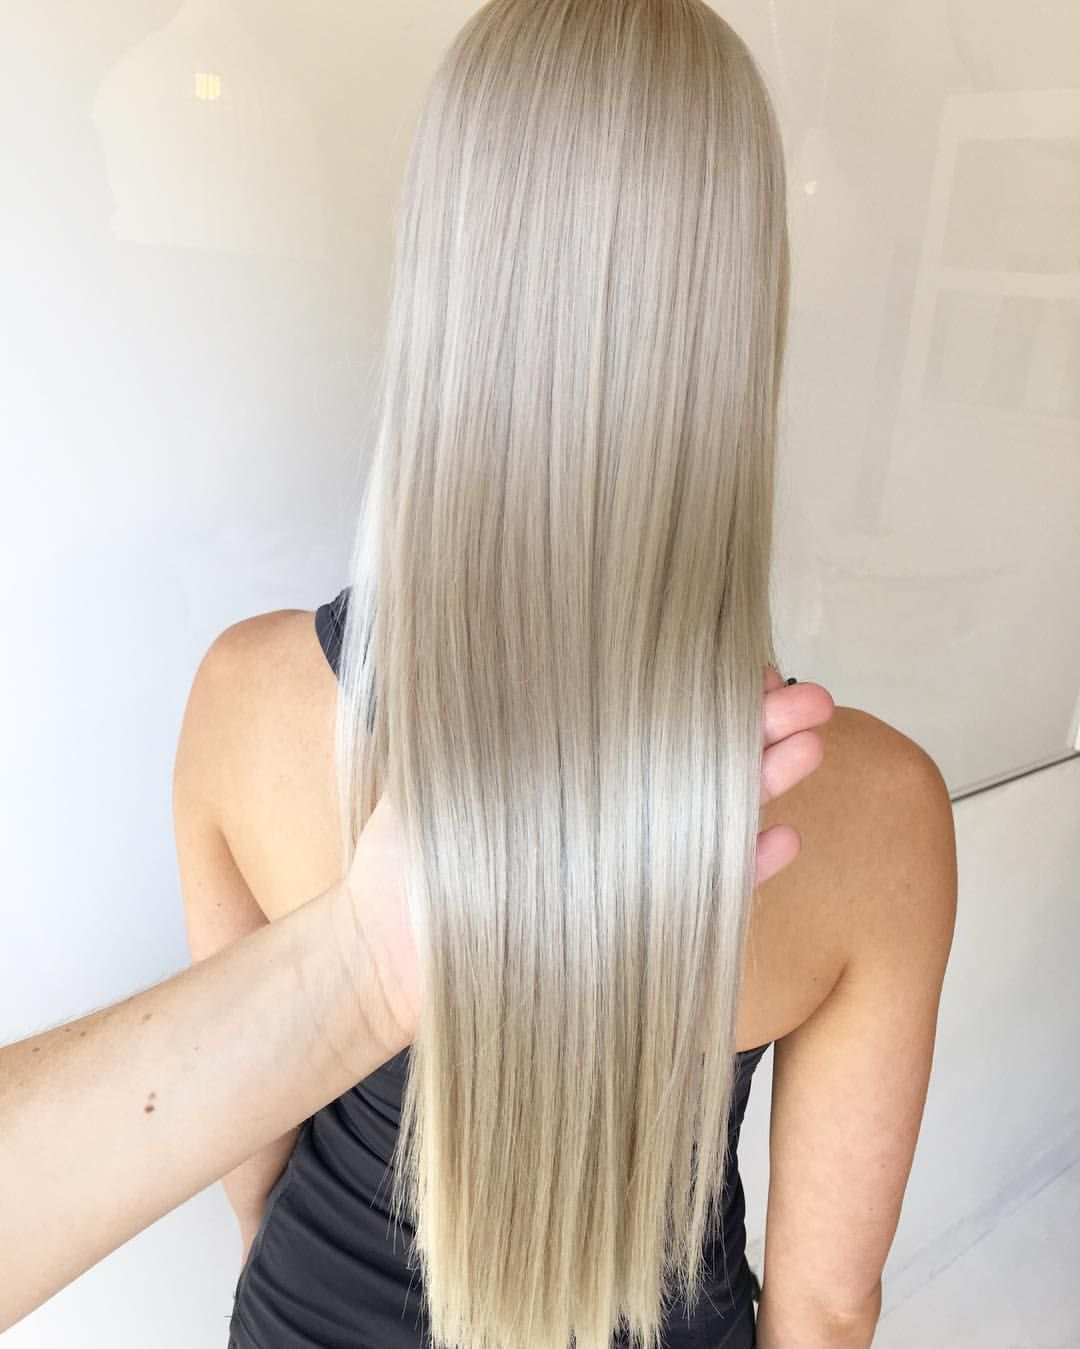 Pin By Janelle Mccarthy On Hair Makeup Bleached Hair Hair Color